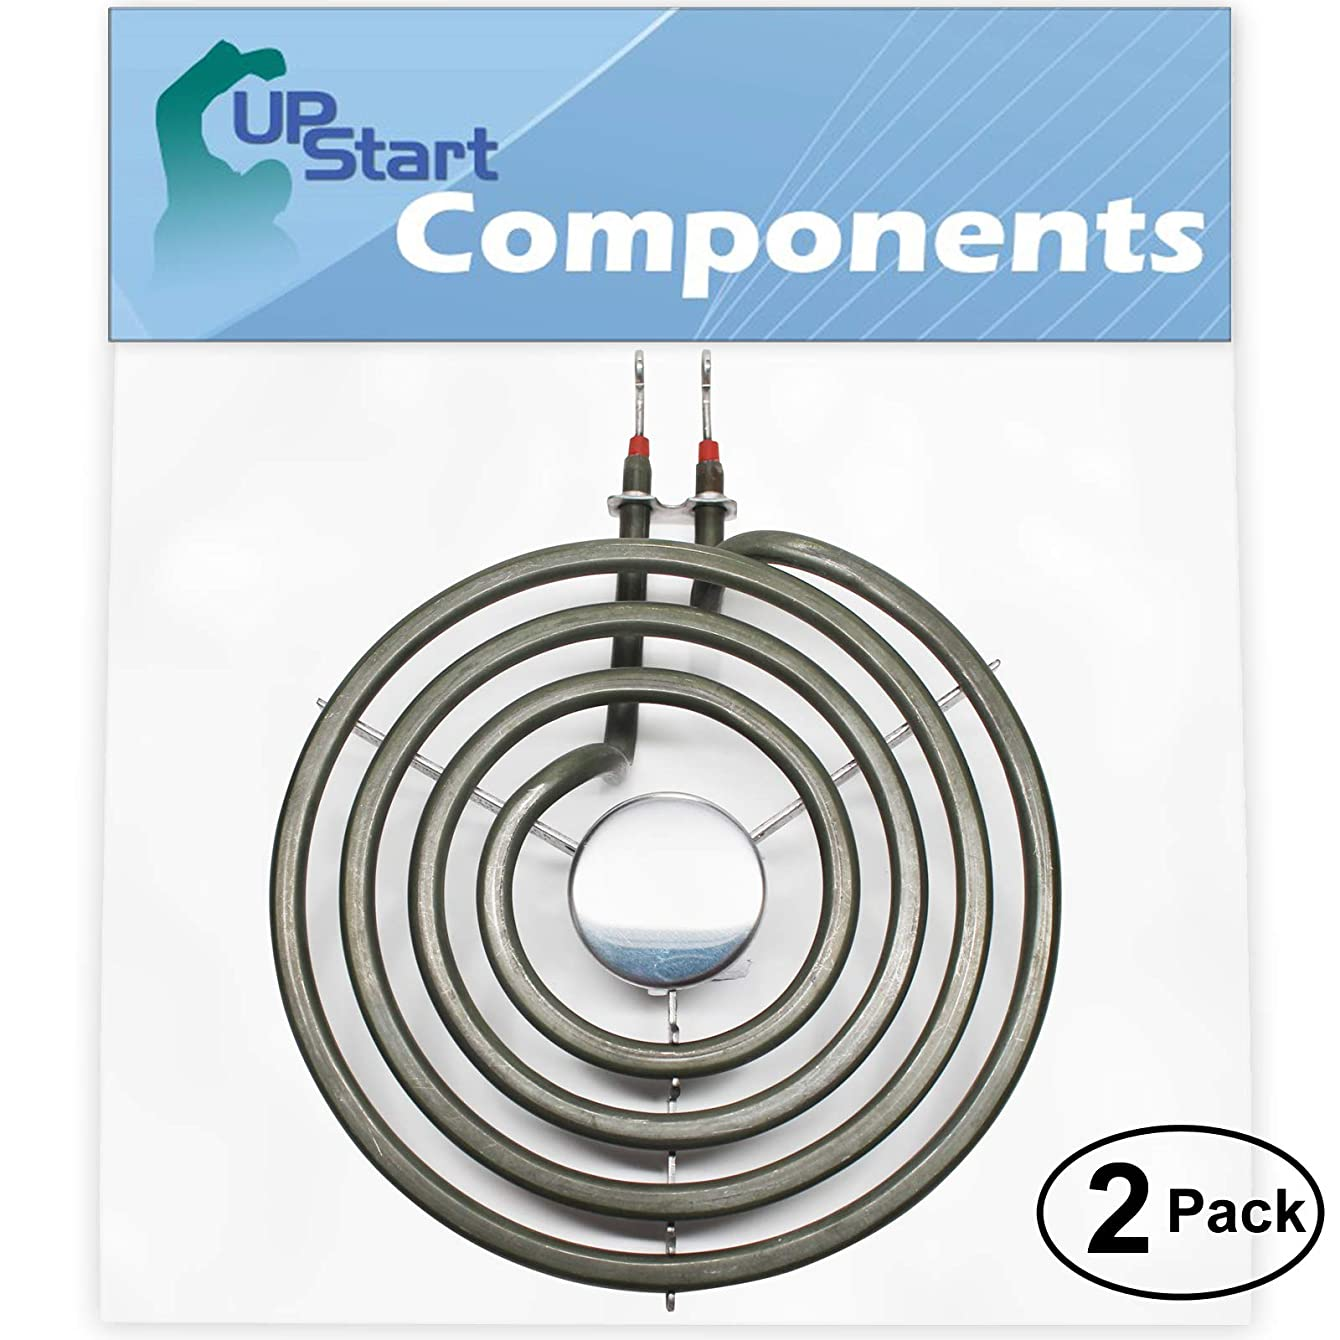 2-Pack Replacement Whirlpool WBC31002 6 inch 4 Turns Surface Burner Element - Compatible Whirlpool 660532 Heating Element for Range, Stove & Cooktop